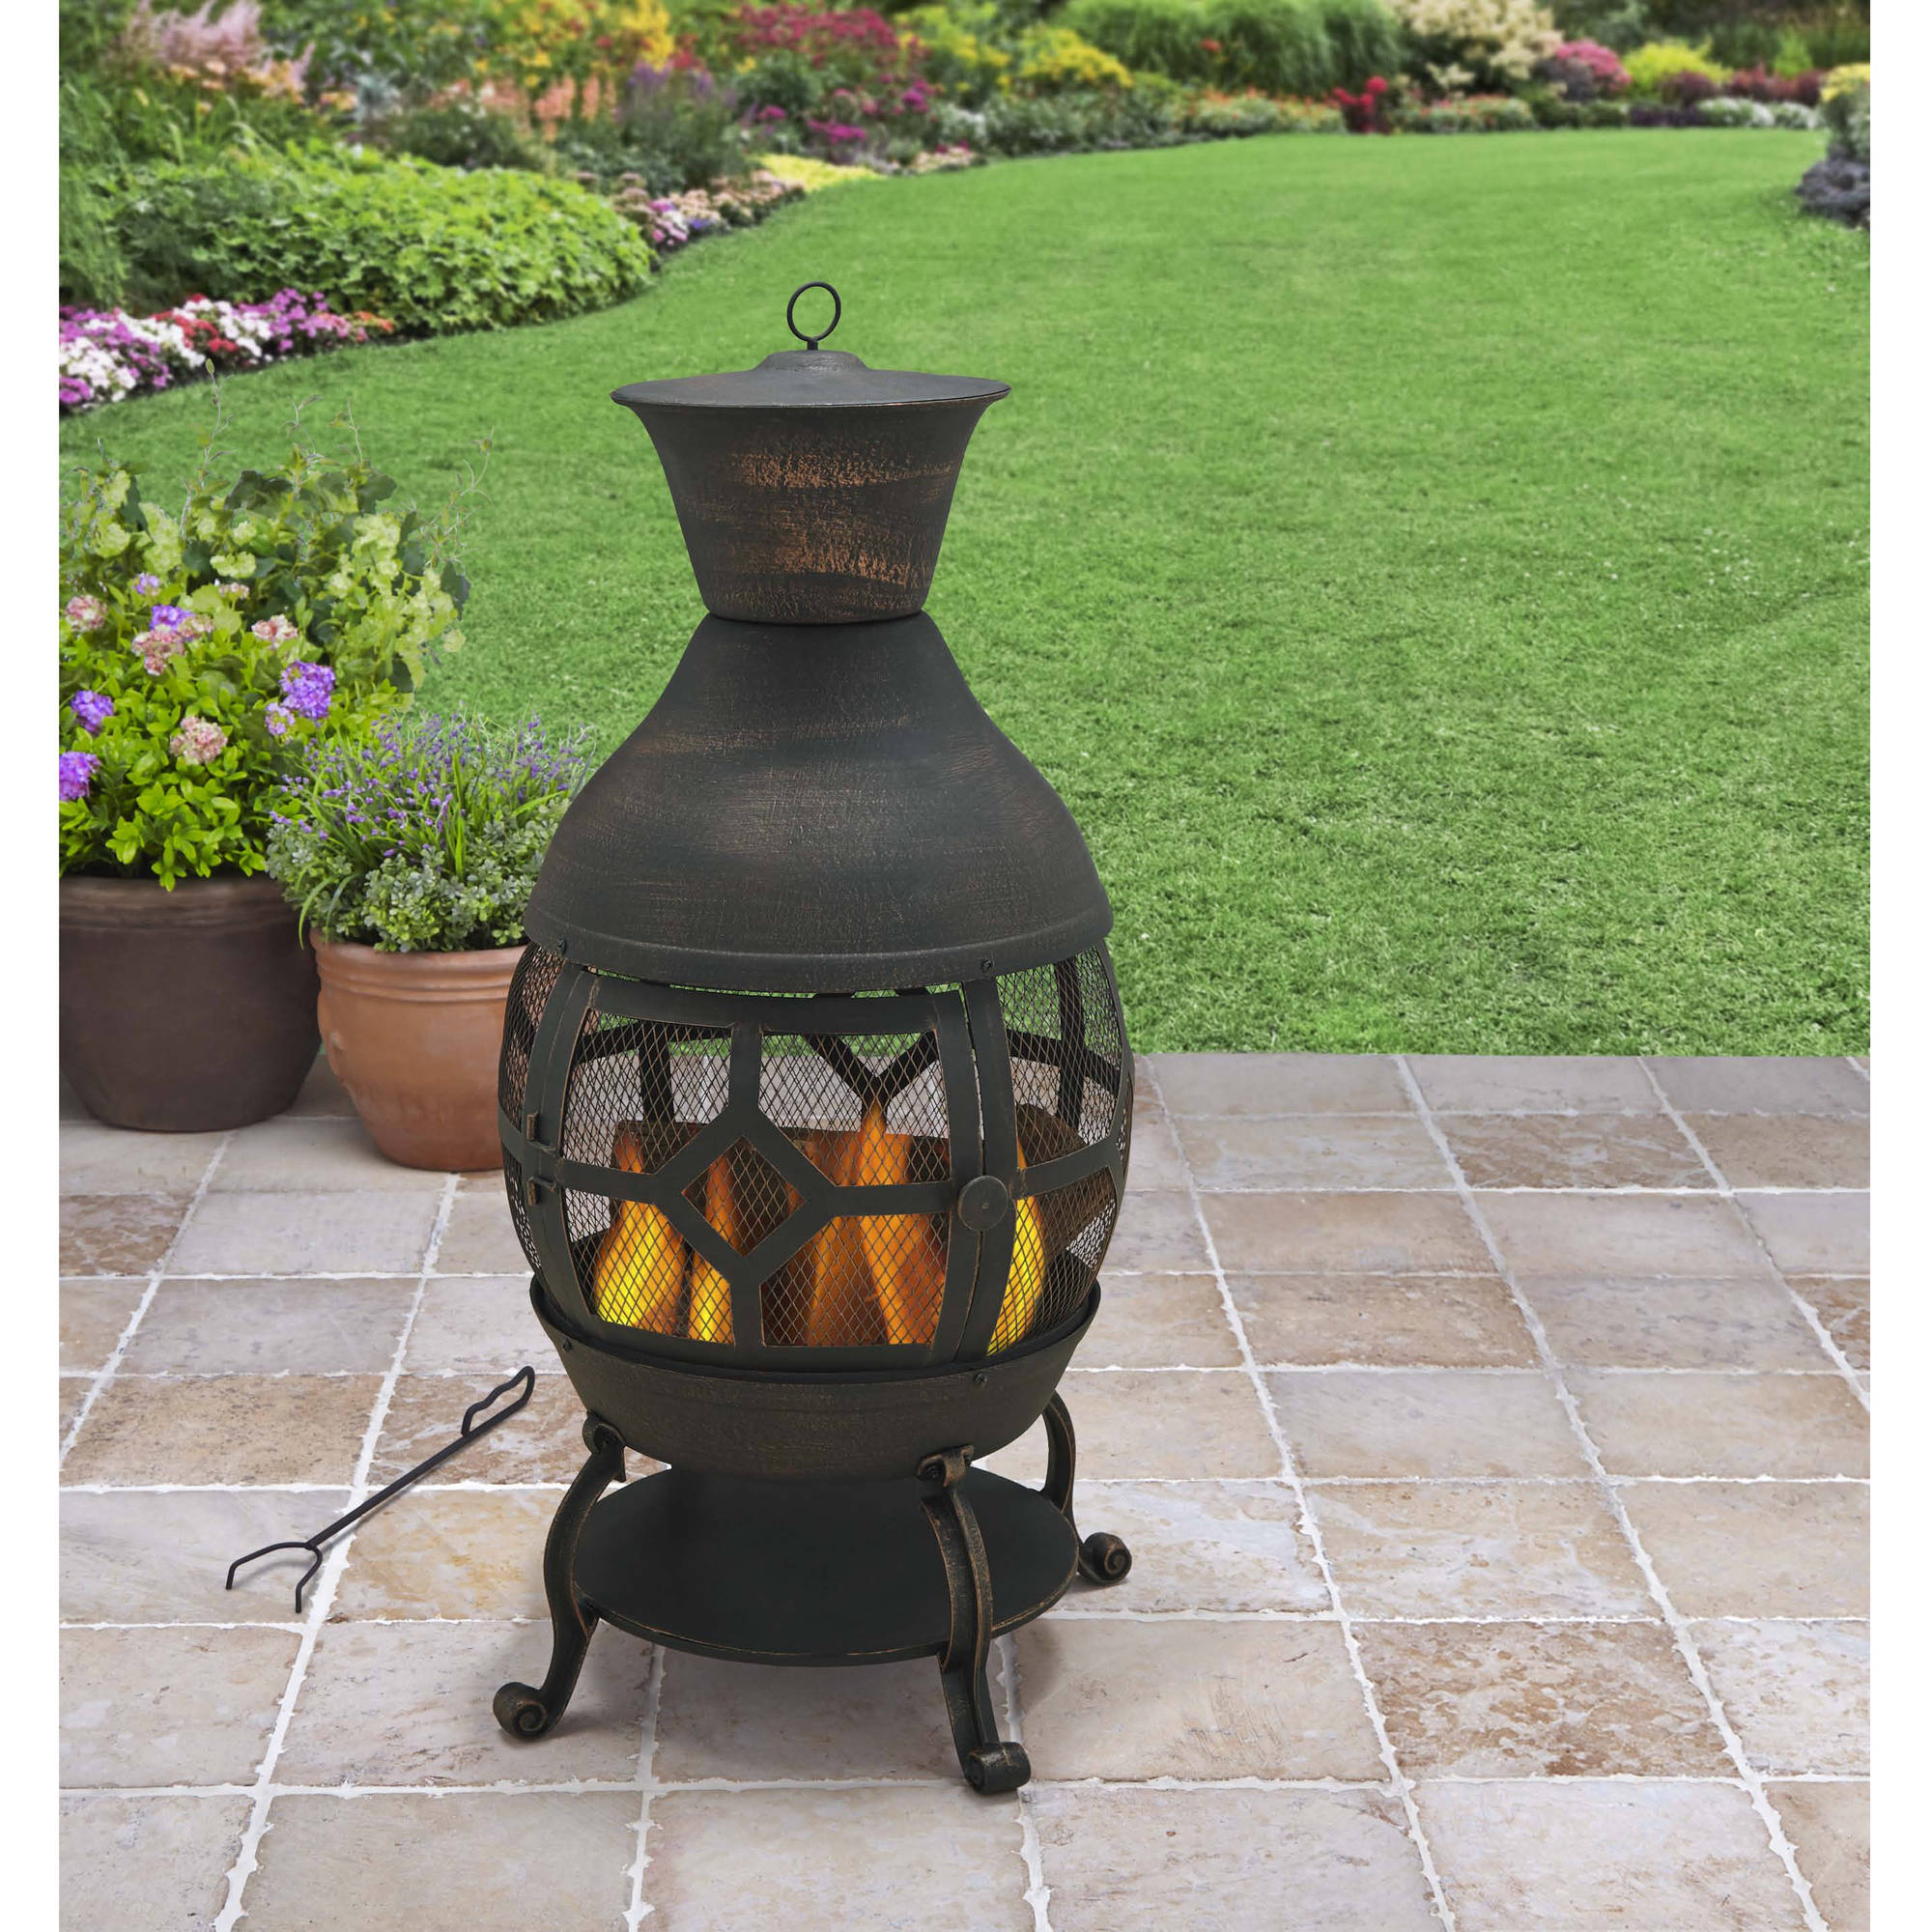 Fireplace Propane Heater Costway Outdoor Fire Pit Table Patio Deck Backyard Heater Fireplace Propane Lp Furniture